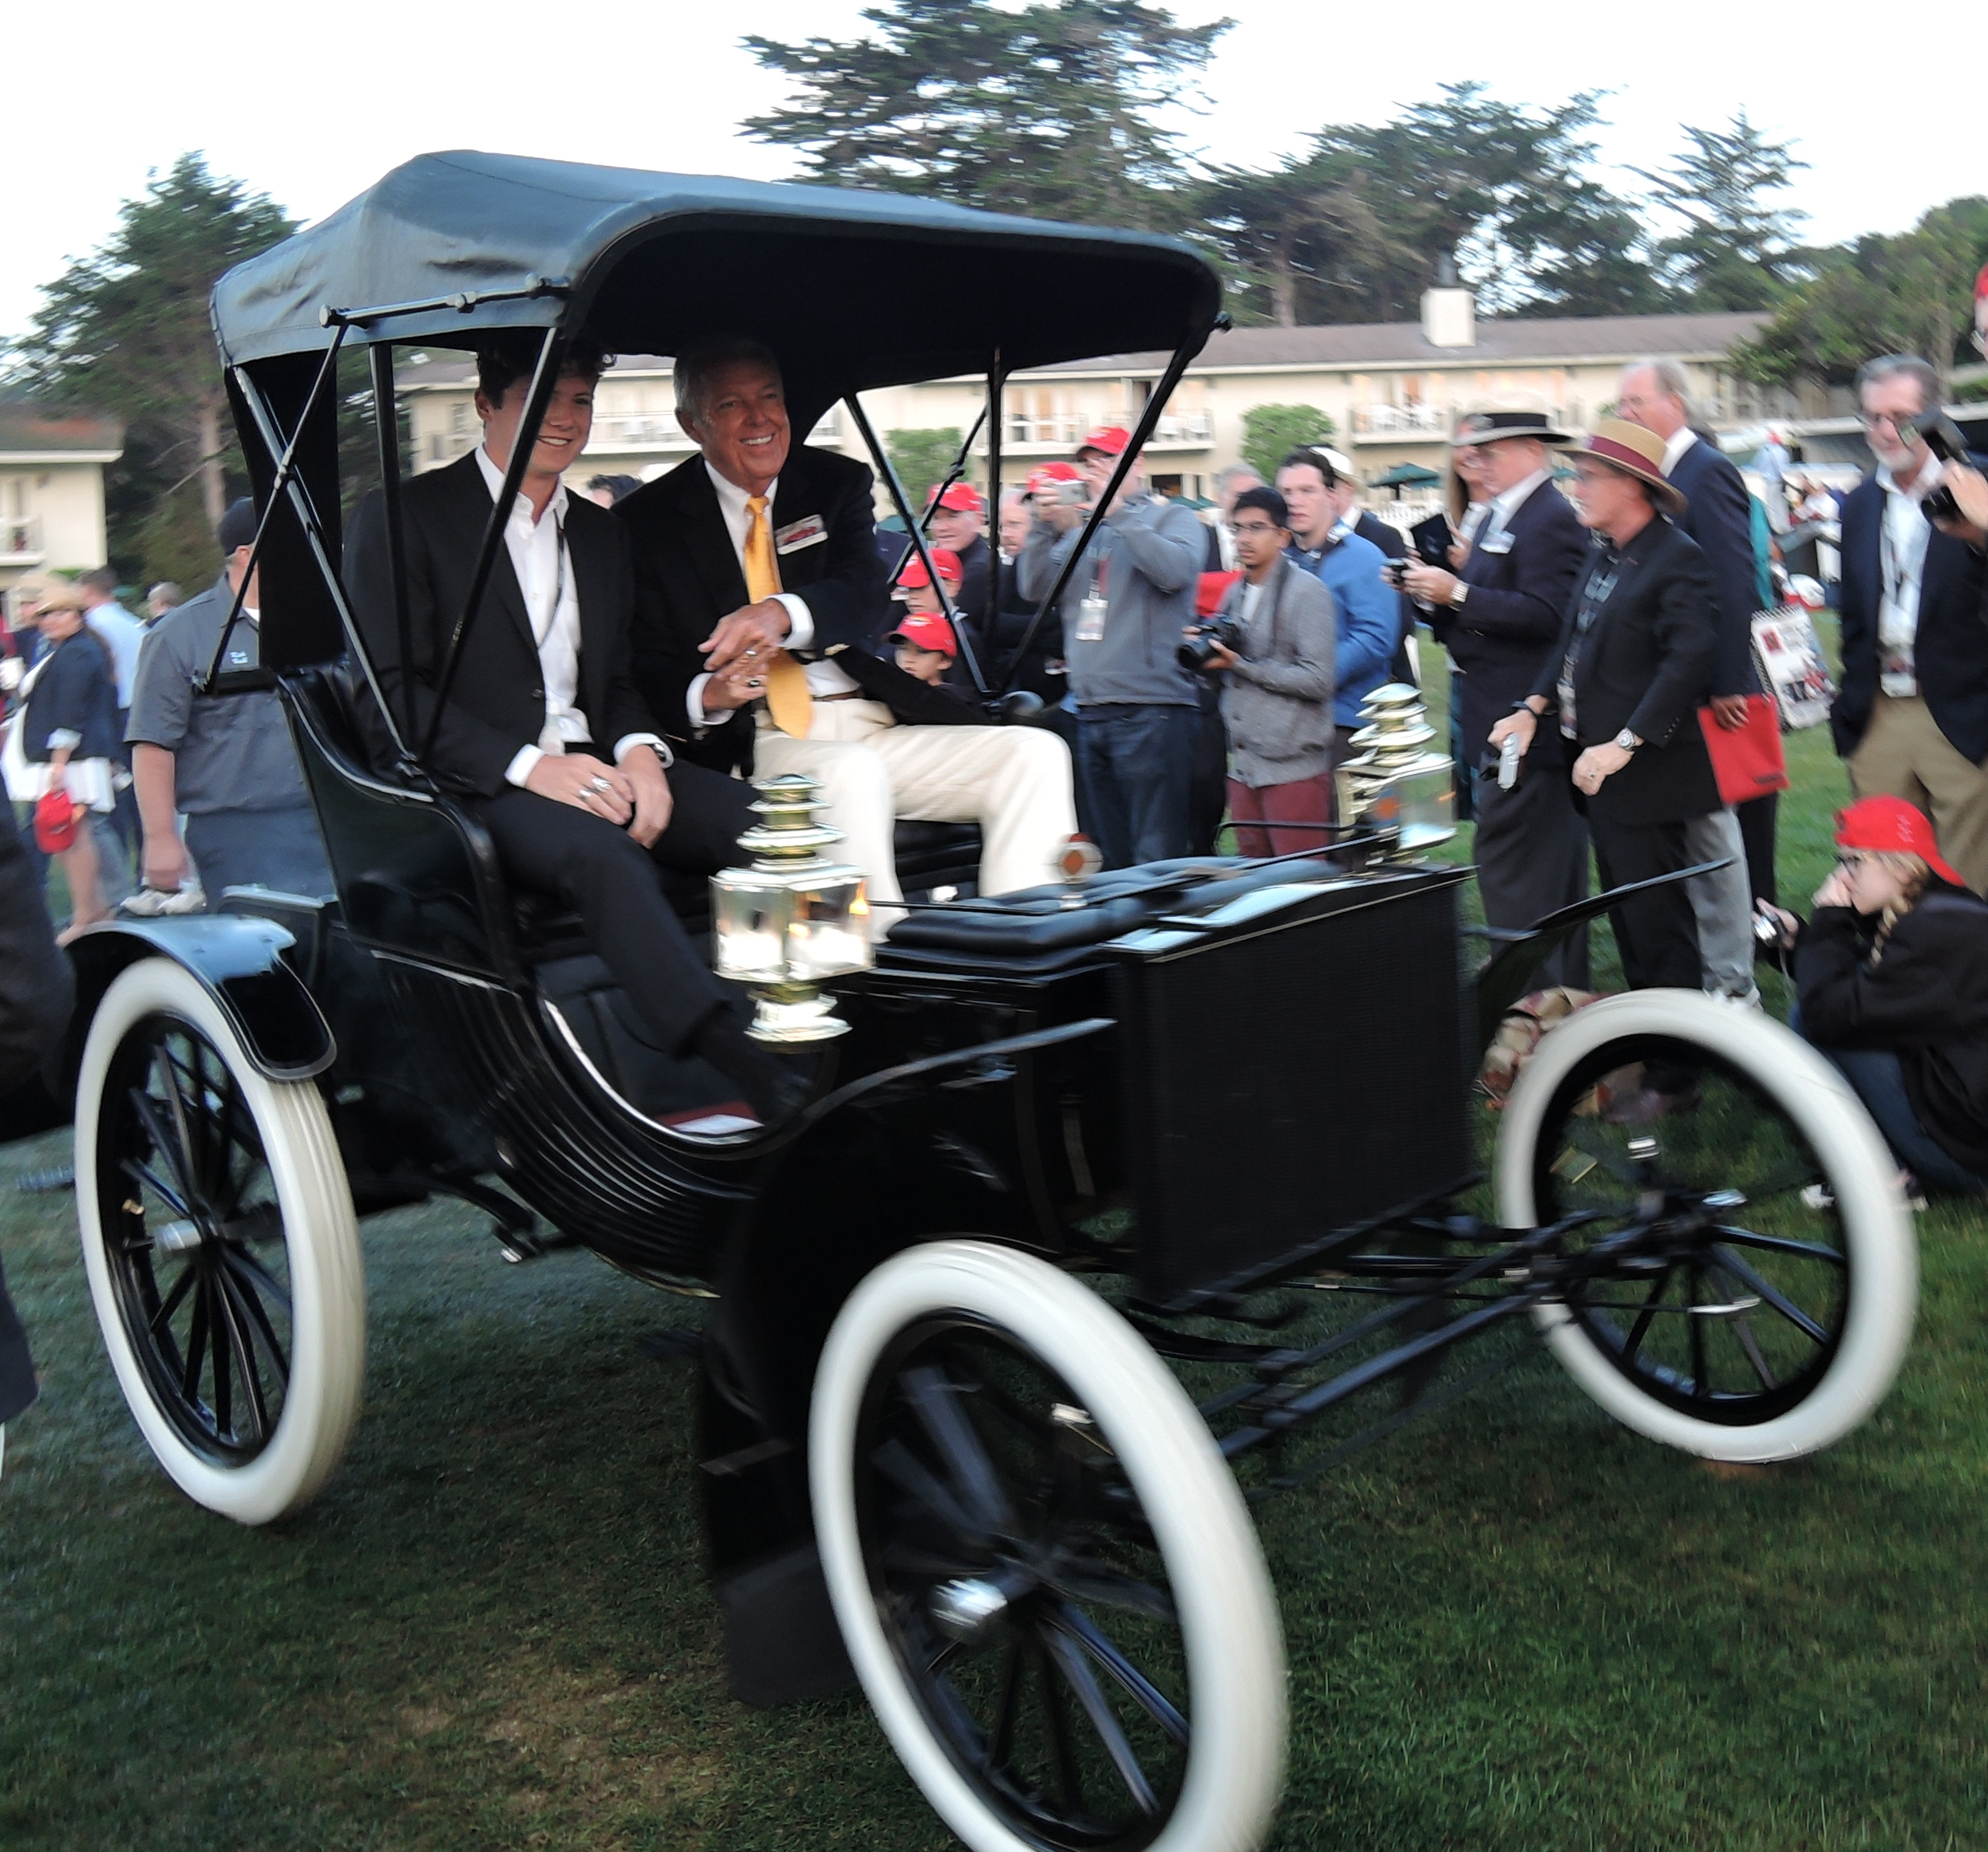 Barry Meguiar arrives in his 1901 Duryea XLS - concours d'elegance